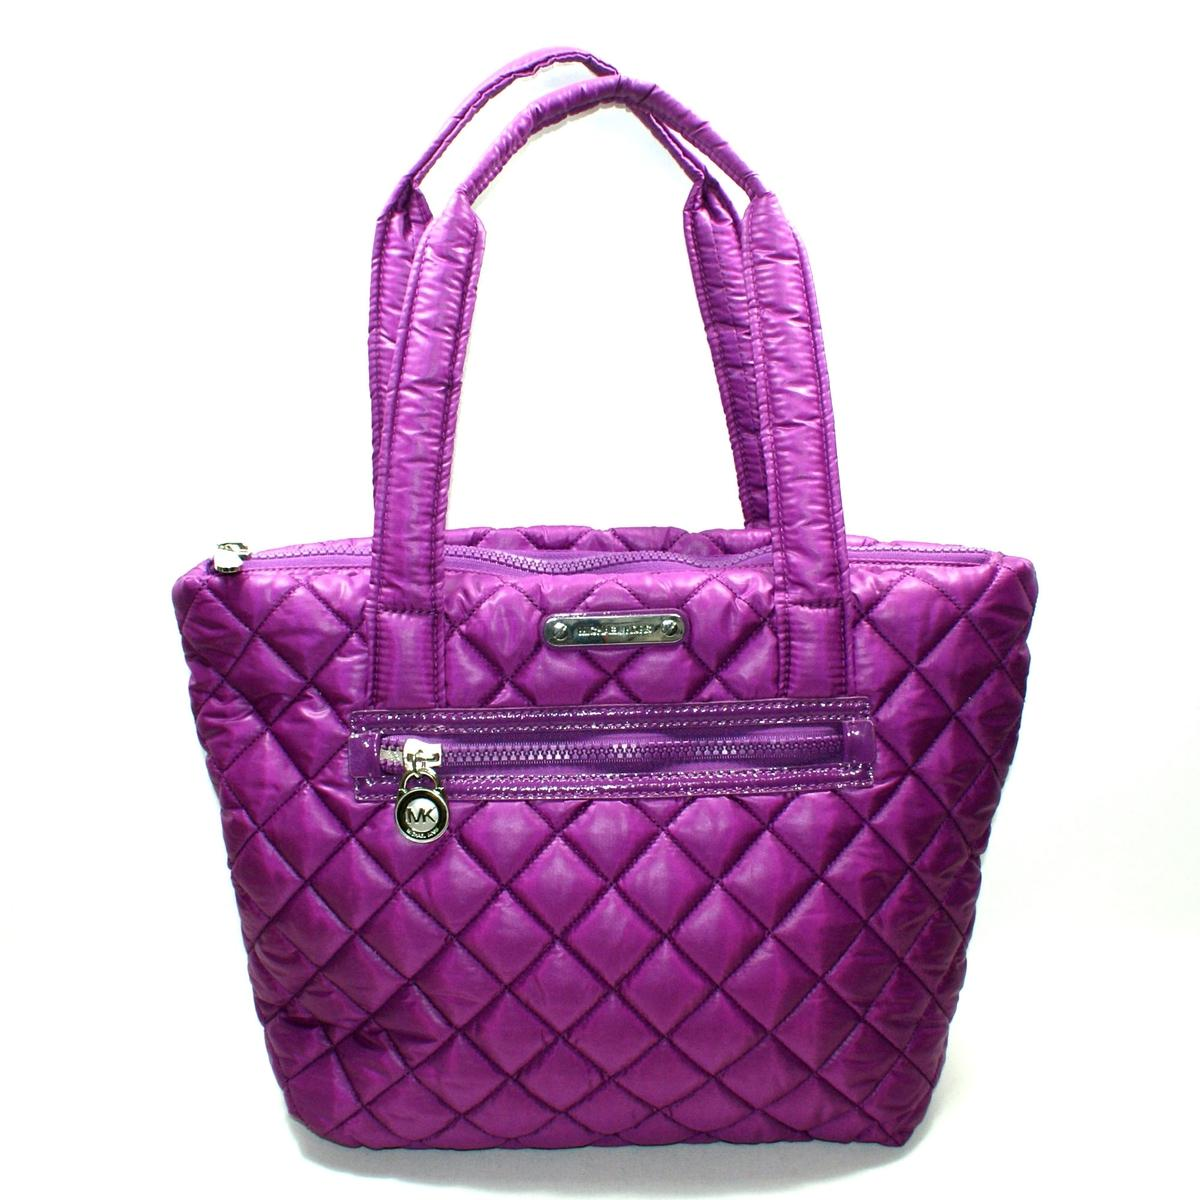 f47dc76438457a Home · Michael Kors · Sadie Quilted Navy Pomegranate Nylon Tote. CLICK  THUMBNAIL TO ZOOM. Found ...